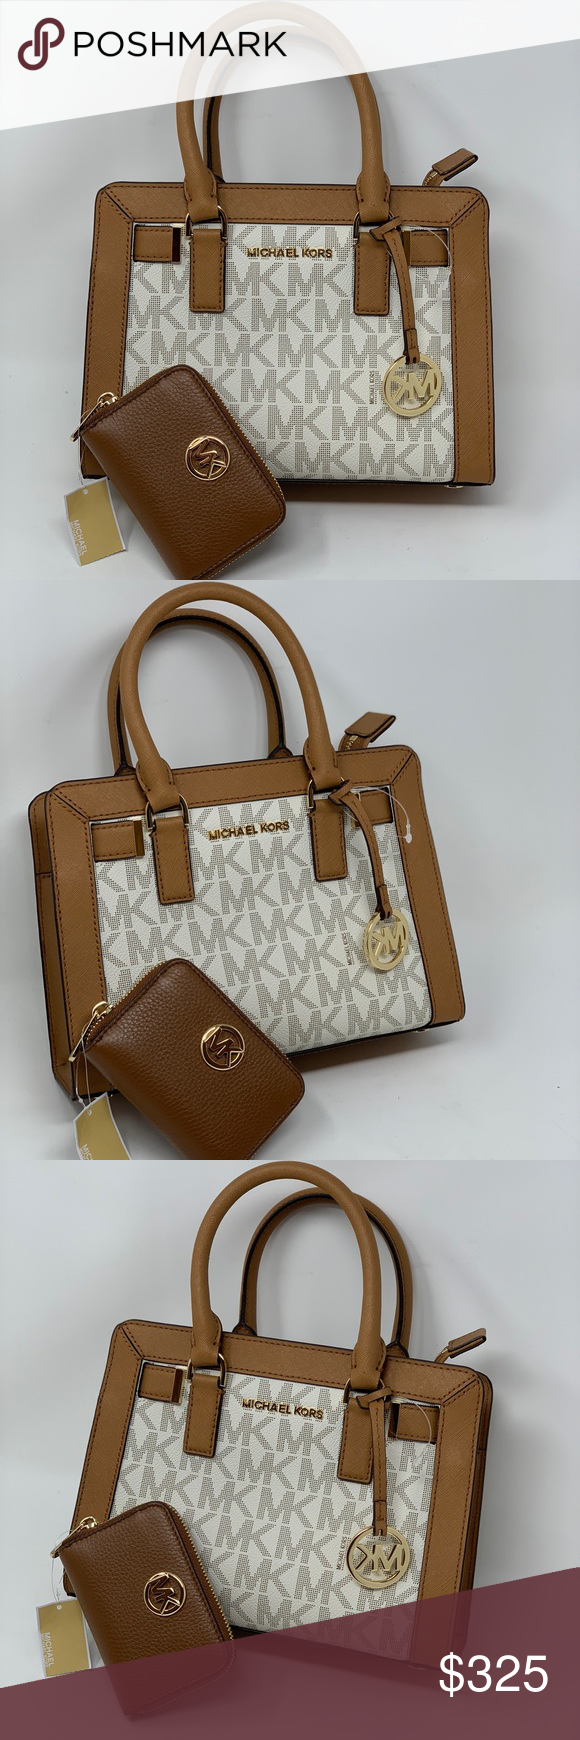 7d4c5e75c93d Michael kors small Dillon satchel bag+wallet set Michael Kors - MK Dillon  Monogram Small